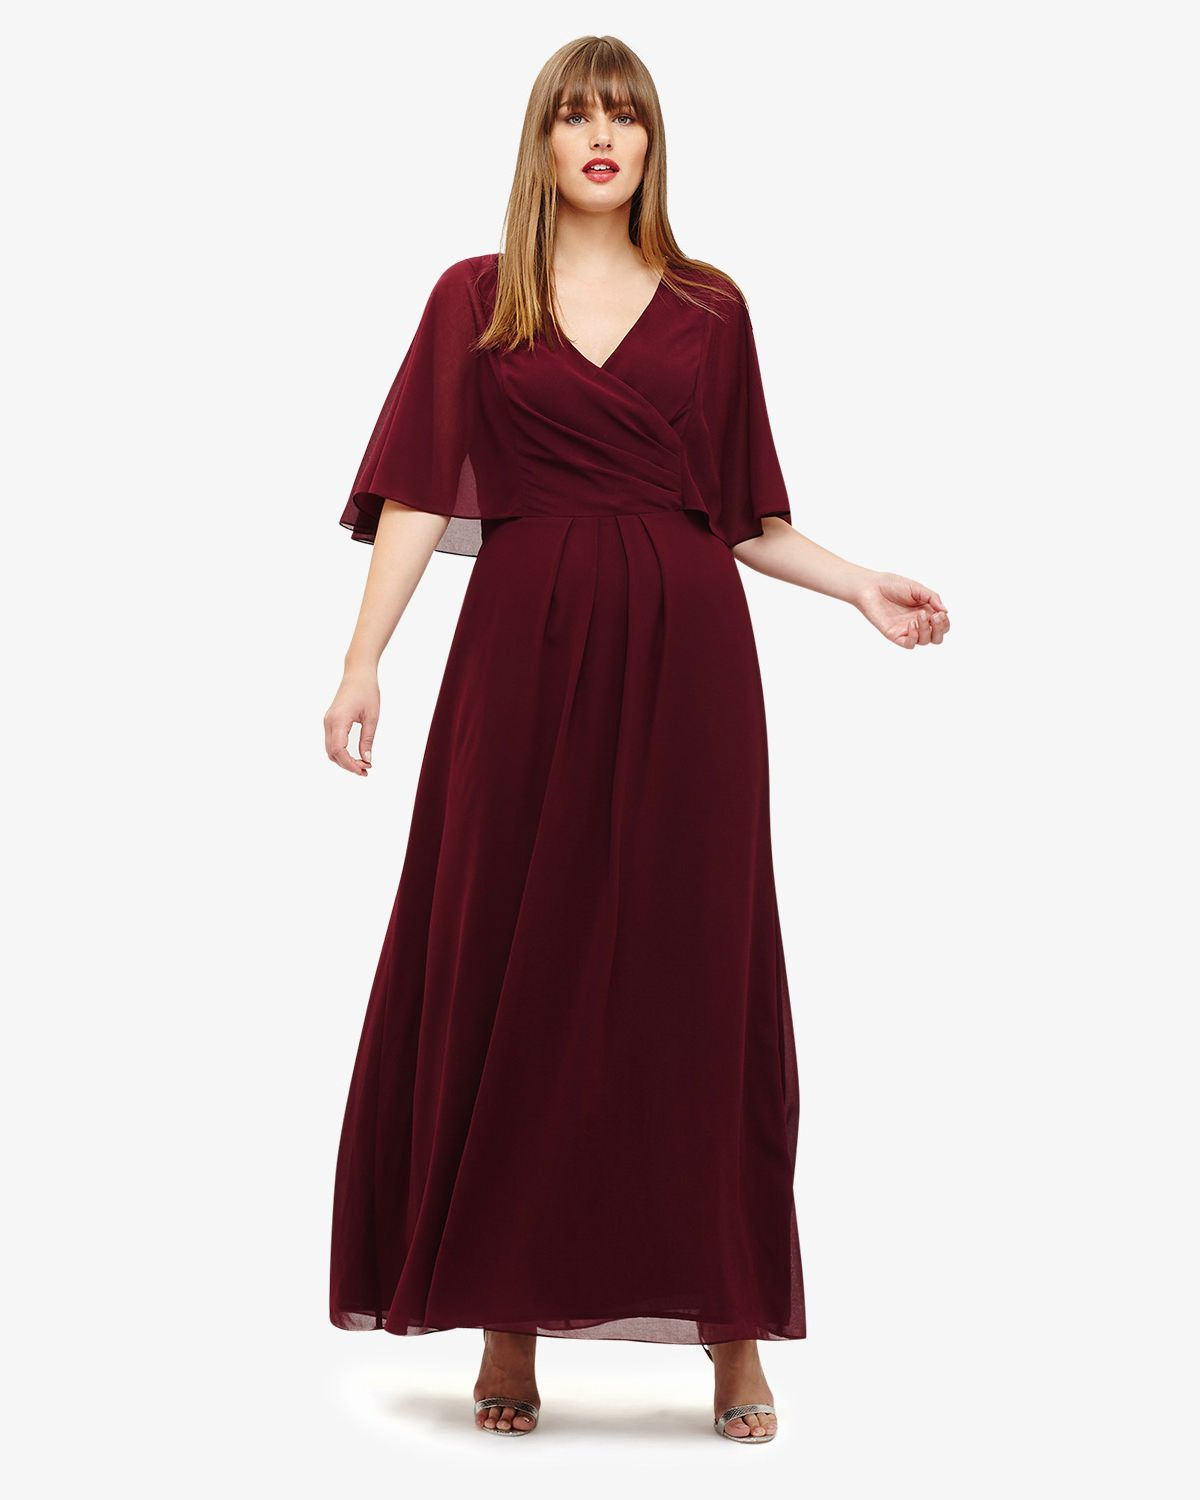 Opal Maxi Bridesmaid Dress | Maxi